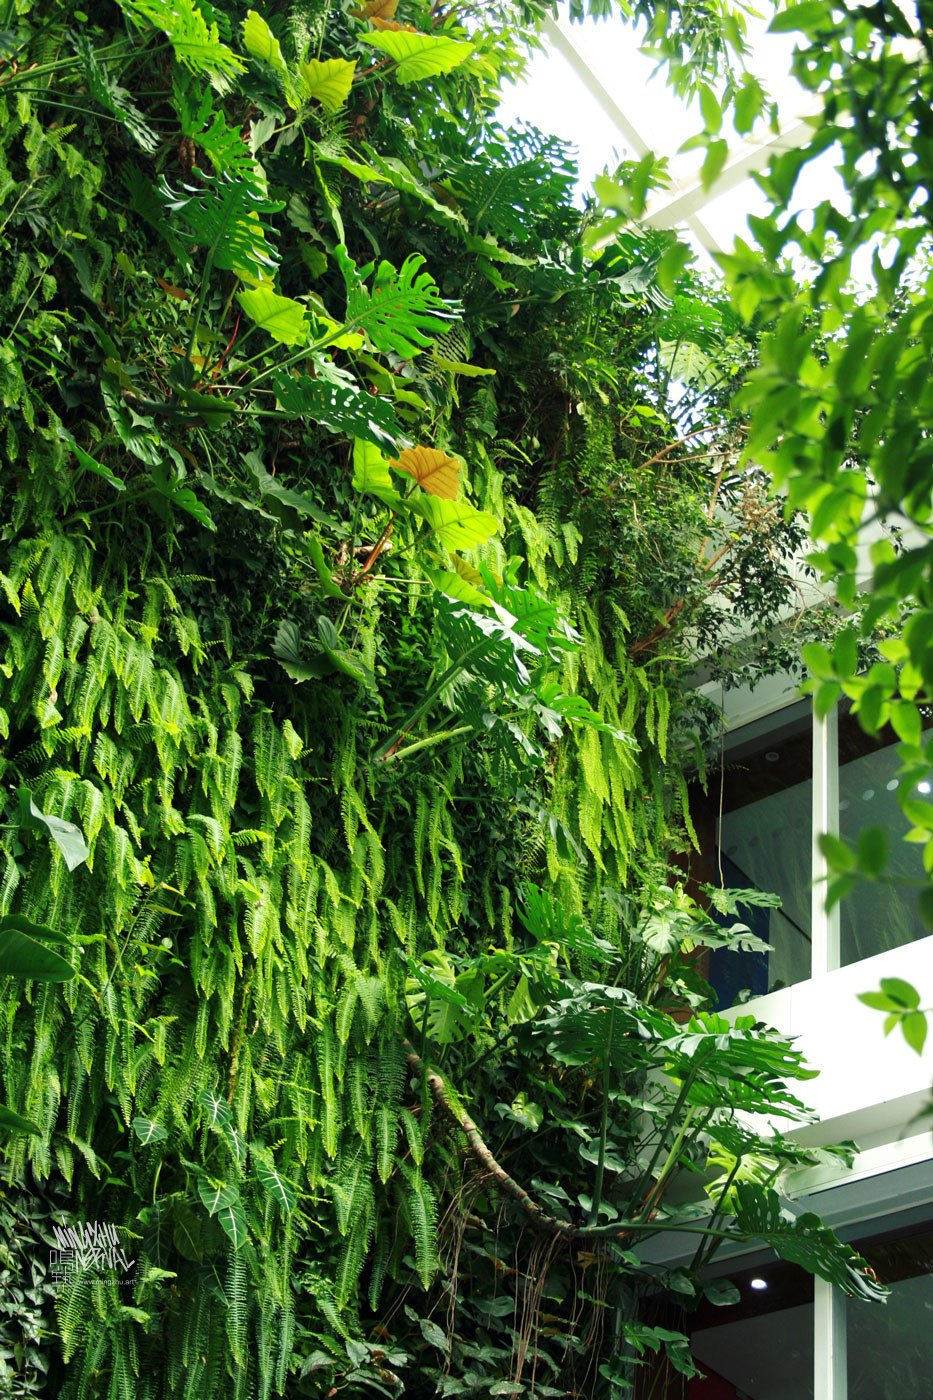 Mingzhu Nerval vertical living wall experts created the best garden design art at Clariant in Shanghai, 2010